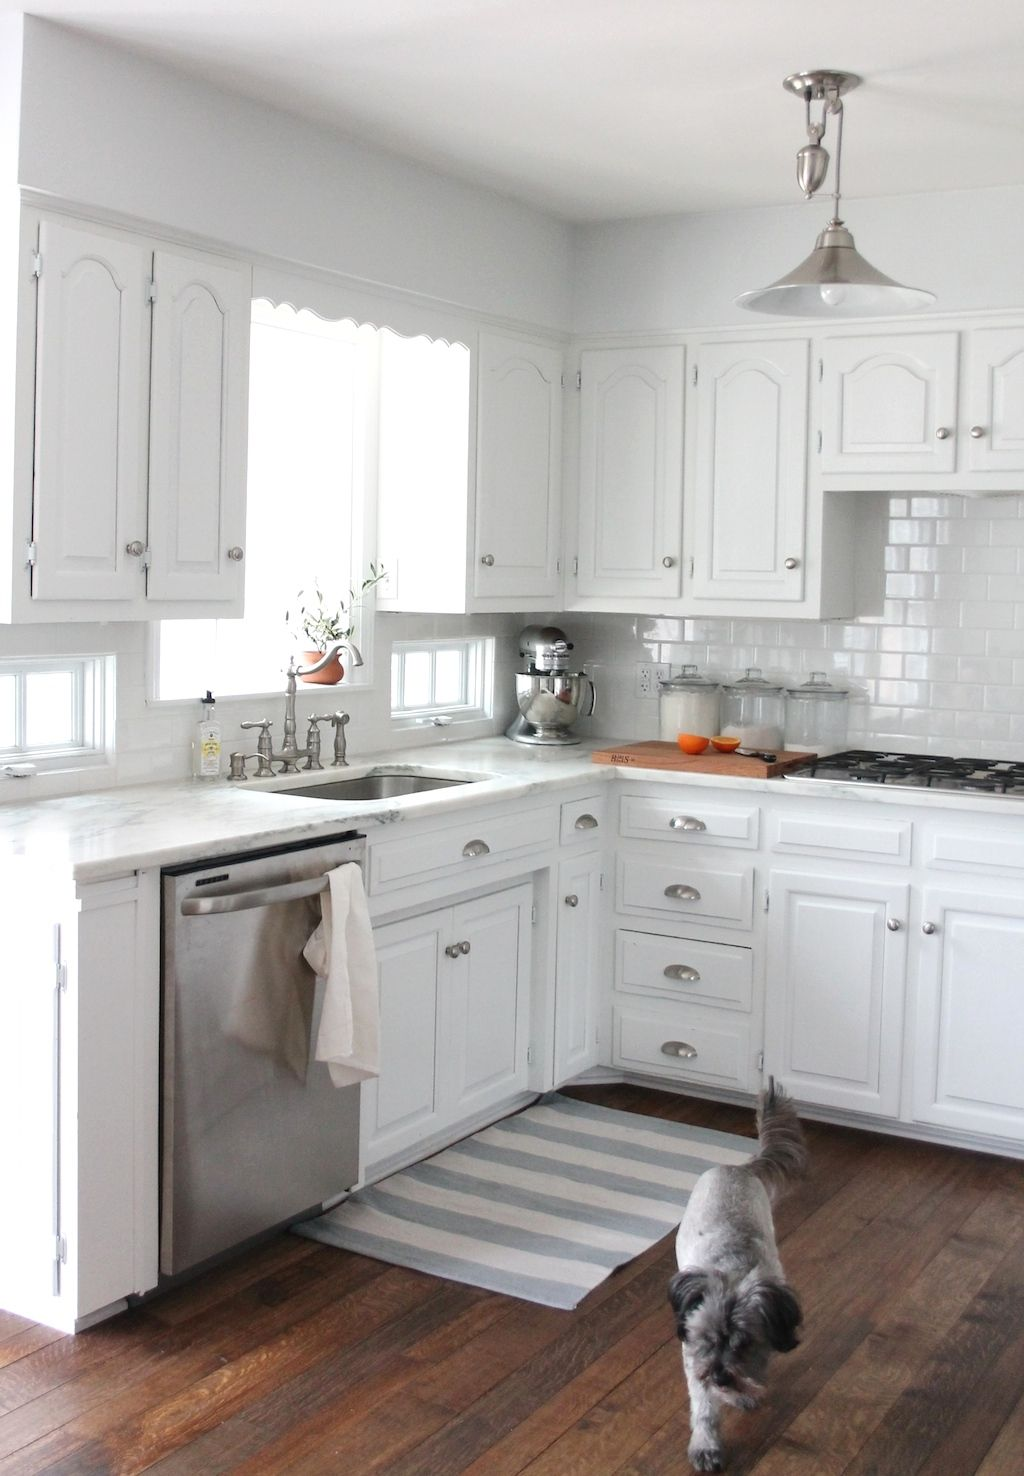 We did it! Our kitchen remodel Easy diy projects and